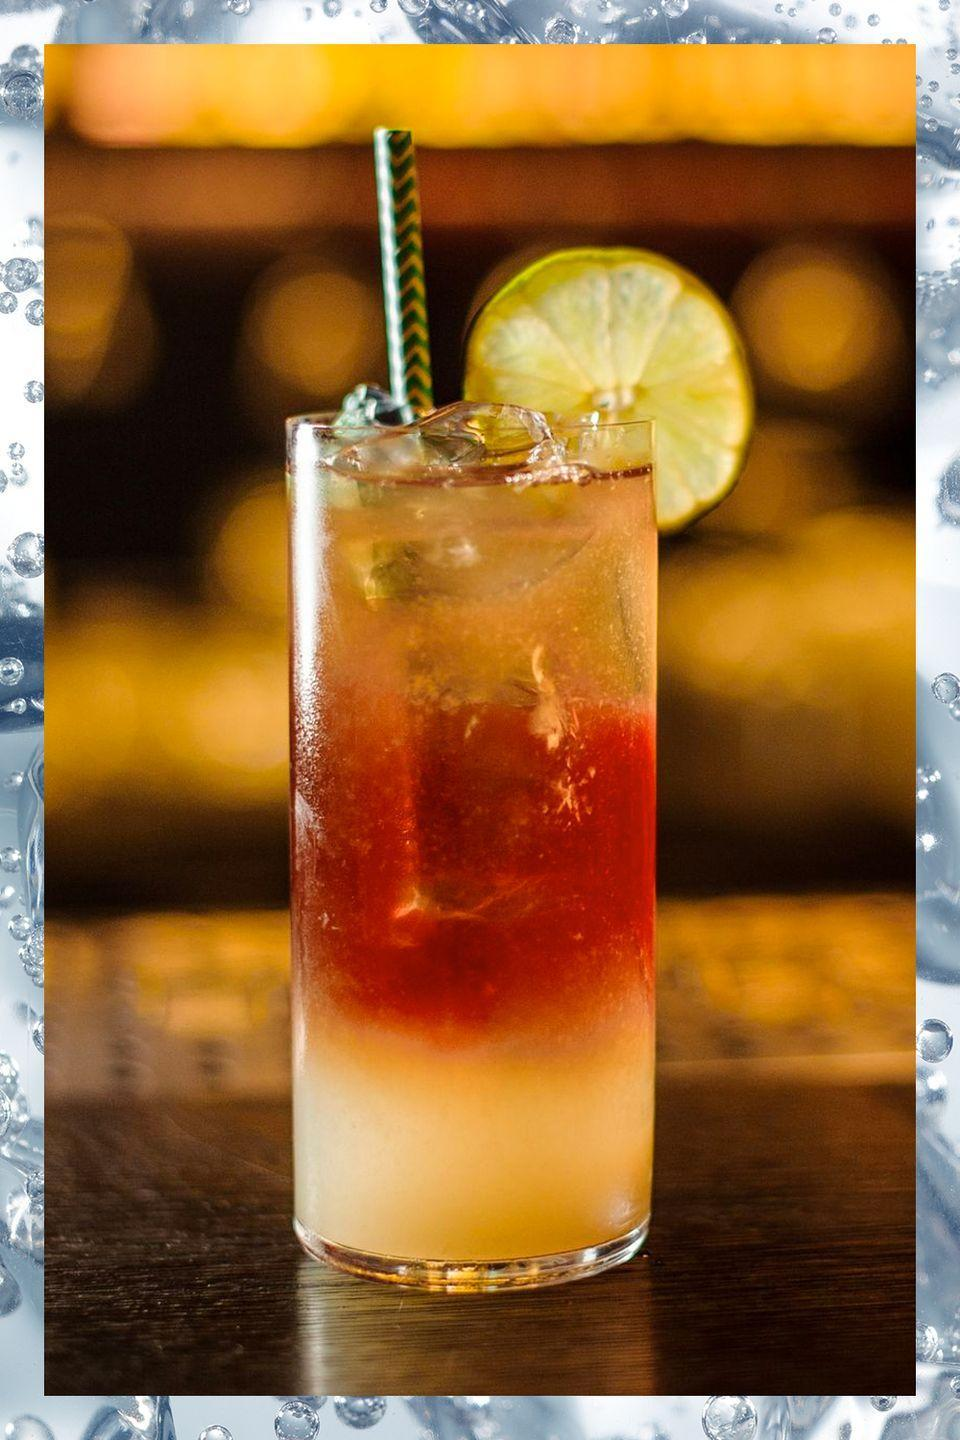 <p>The Dark 'n Stormy was created on Bermuda in the late 1800s when British sailors, already rum fans, took to brewing ginger beer and combined their two favorites into one tasty concoction. Traditionally the cocktail is made exclusively with Bermuda-native Gosling's Black Seal Rum. </p><p>- 1.5 oz Gosling's Black Seal Rum<br>- Ginger beer to top</p><p><em>Fill a highball glass with ice and add rum and ginger beer. Garnish with lime. </em></p>